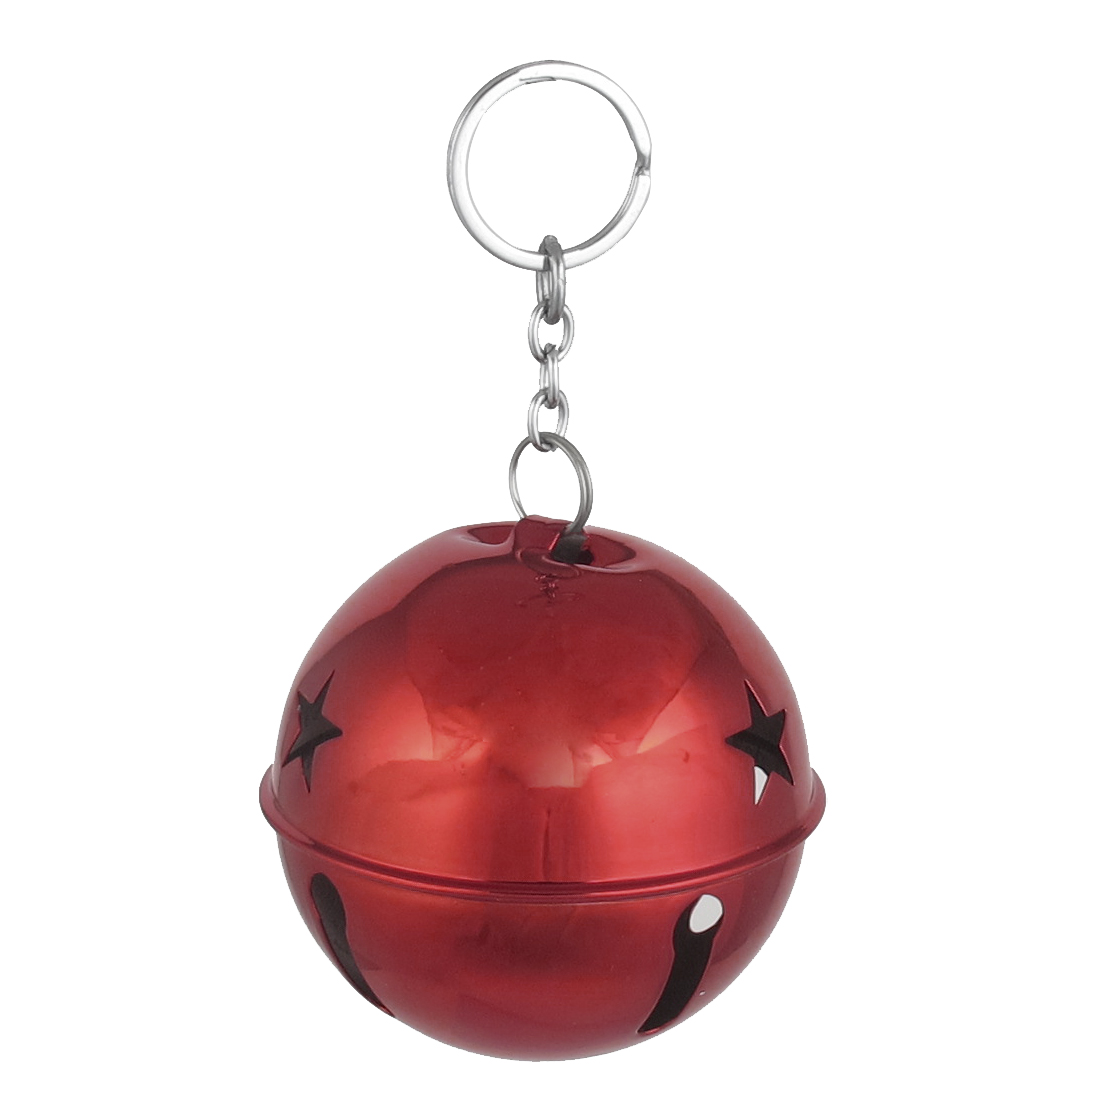 80mm Diameter Red Metal Keychain Split Star Hollow Out Design Ring Bell Ornament for Xmas Celebration Case Backpack Purse